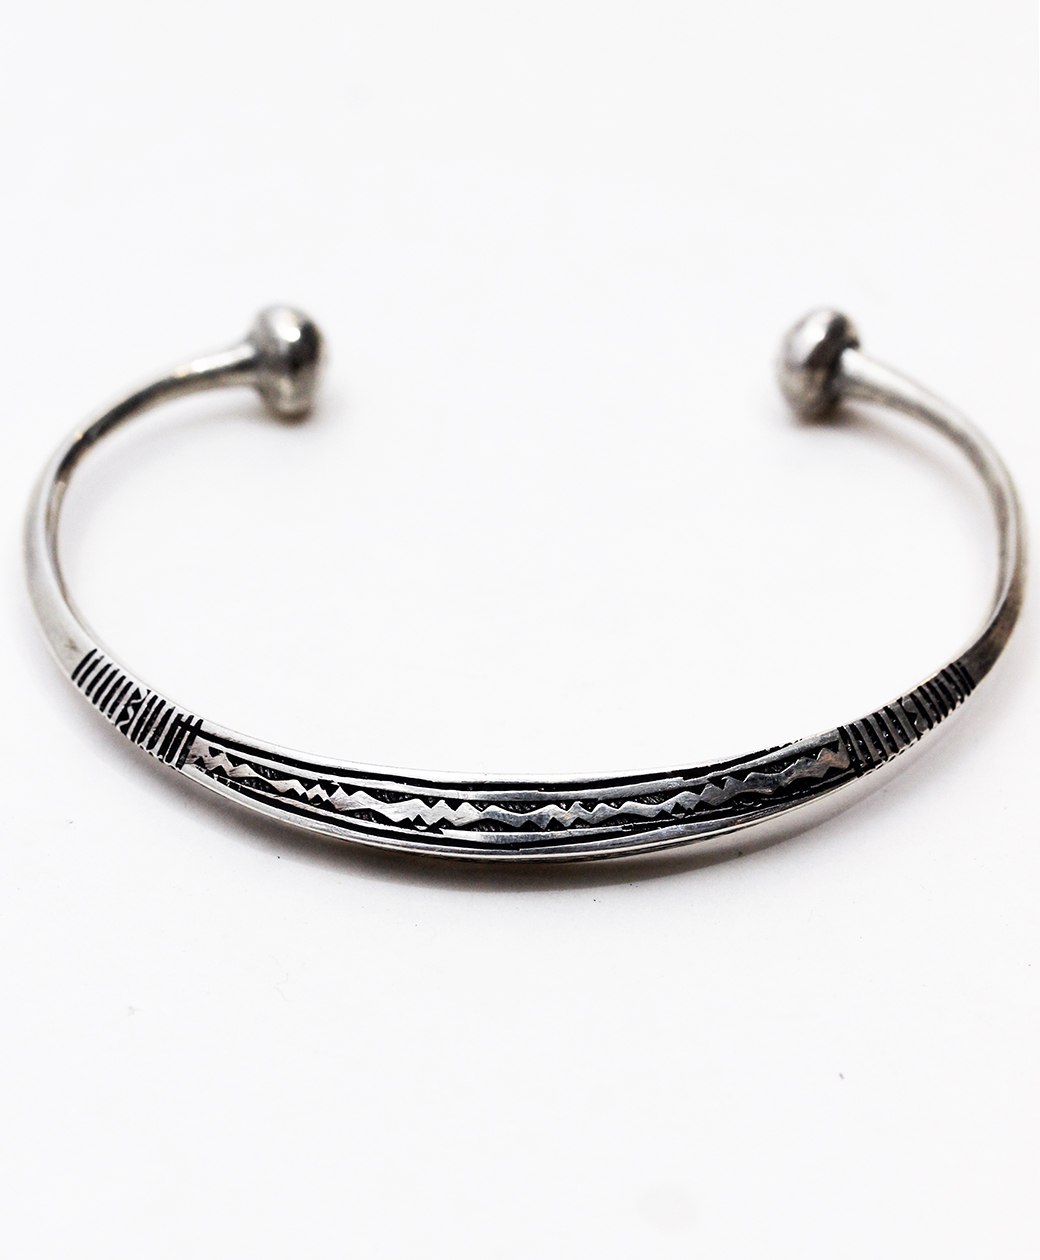 TUAREG SILVER JEWELRY BANGLE(C)